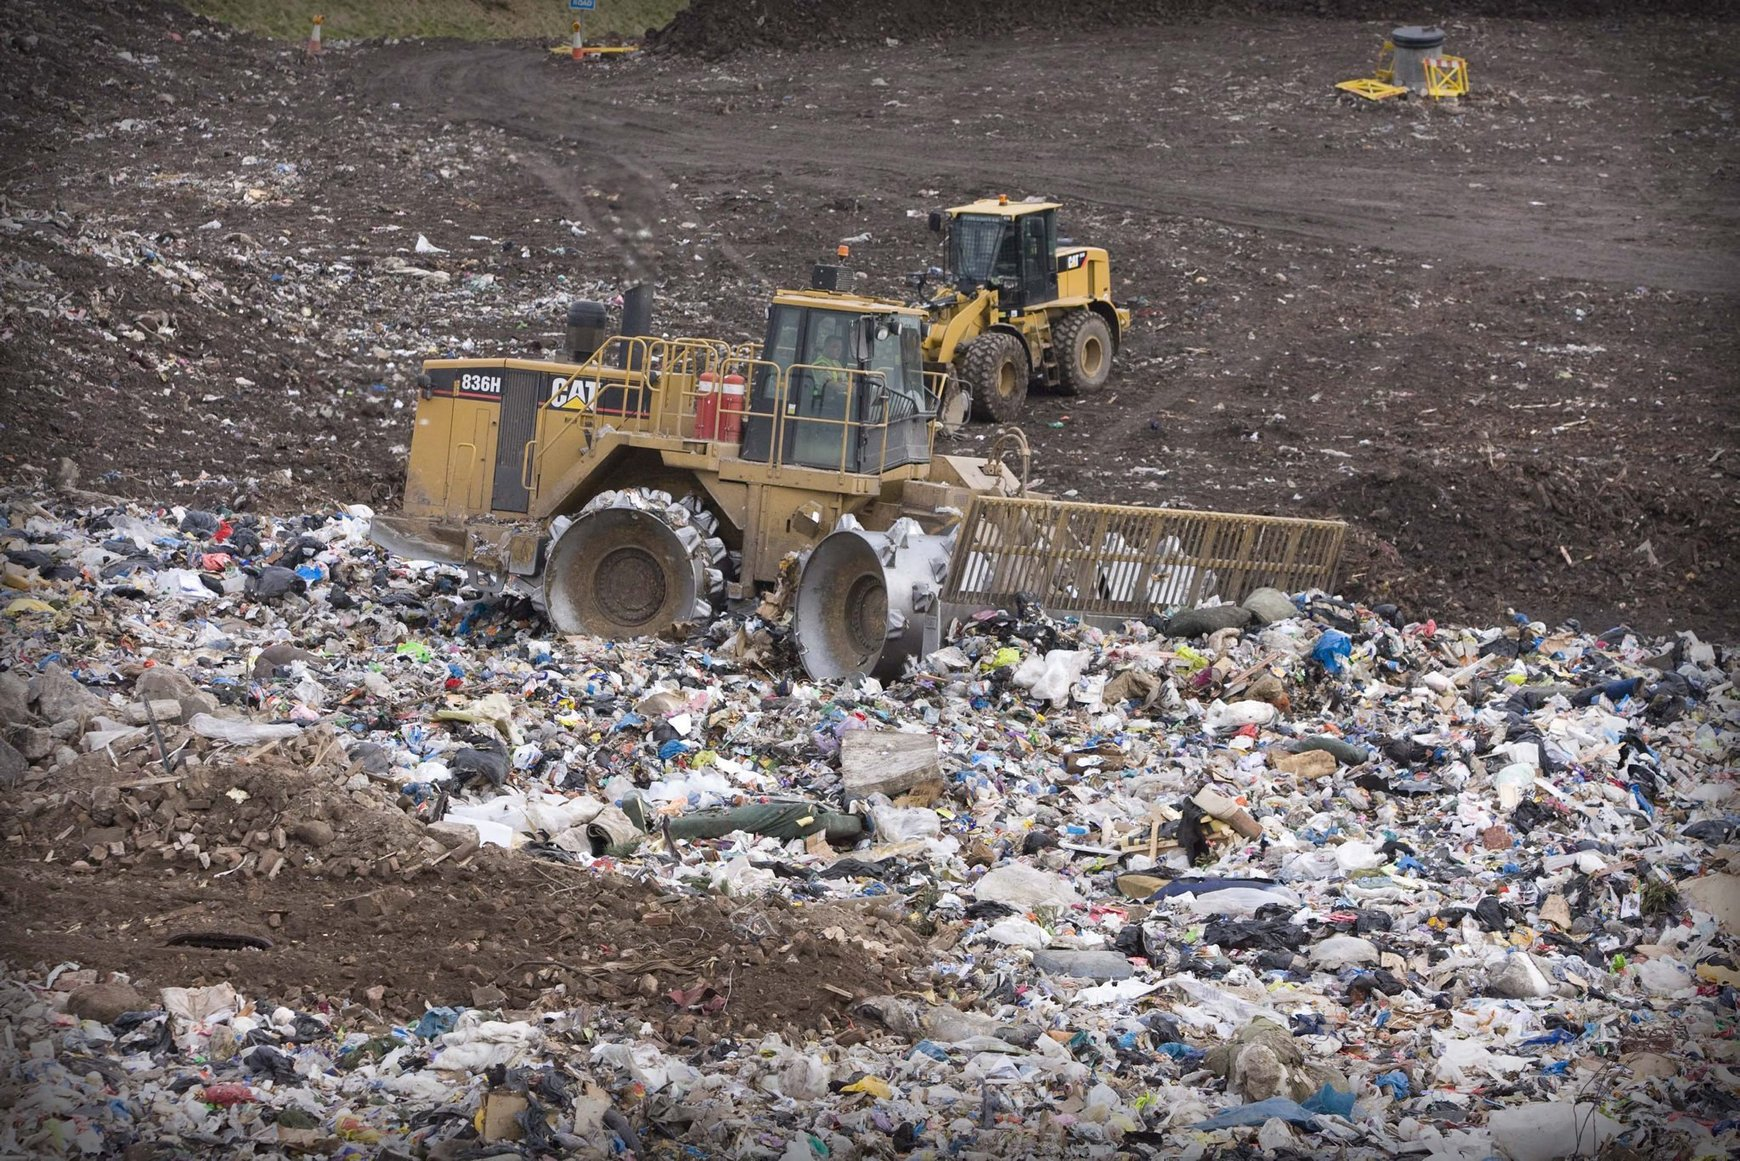 , Zero Waste Scotland to team up with construction industry, The Circular Economy, The Circular Economy